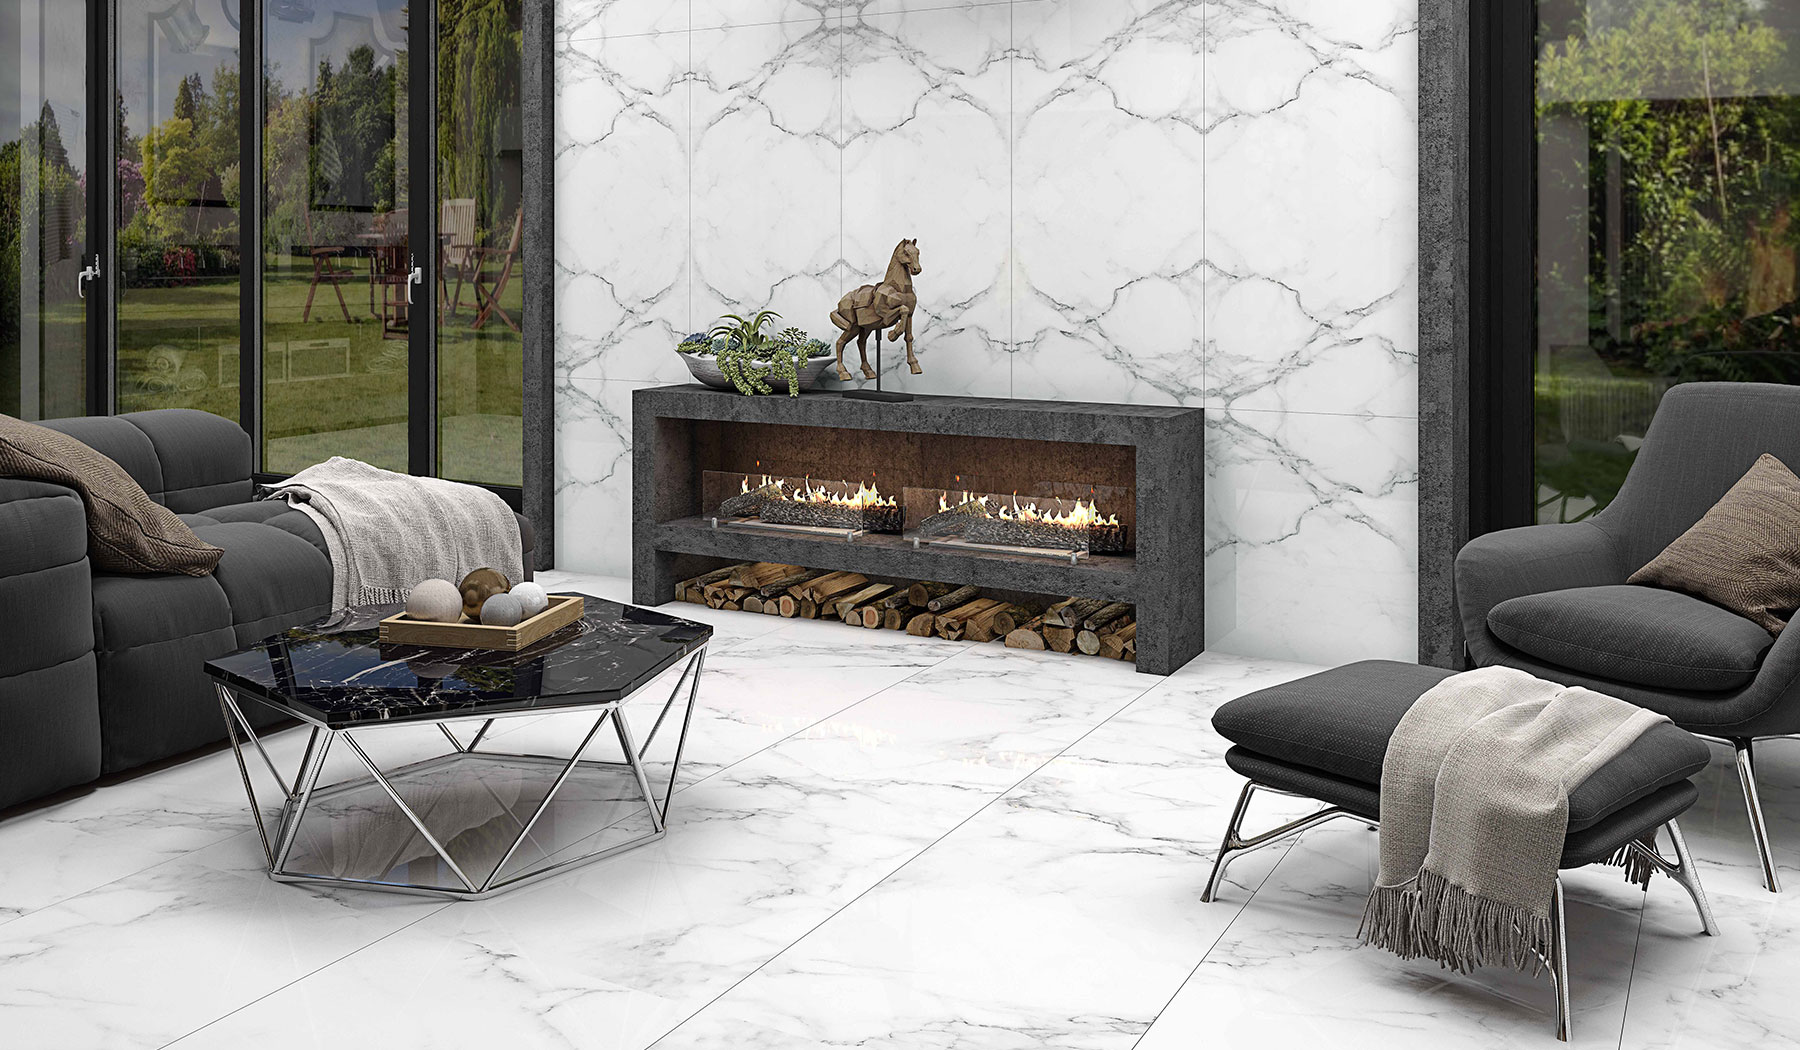 boom ceramic , Porcelain Ceramic Book Match Rocky Design , White Stone texture , Full Polish Flat in size 120*60